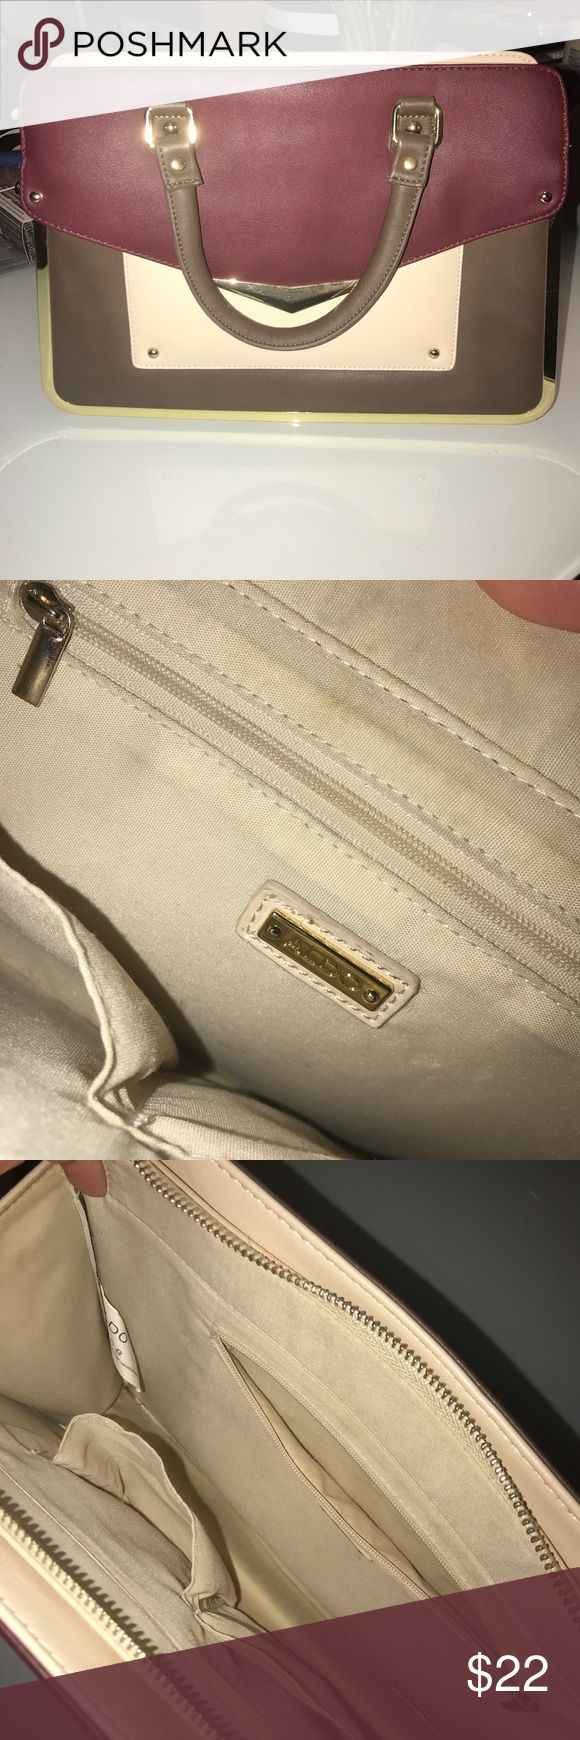 ALDO Handbag (LIKE NEW) Super cute Aldo purse LIKE NEW  Only worn once! No scratches, scuffs, or strings hanging out.  Doesn't include exta strap (got lost) but looks cute when carried on arm!  Perfect for fall & winter clothes!  Structured and stands on own when placed on table! Aldo Bags Satchels